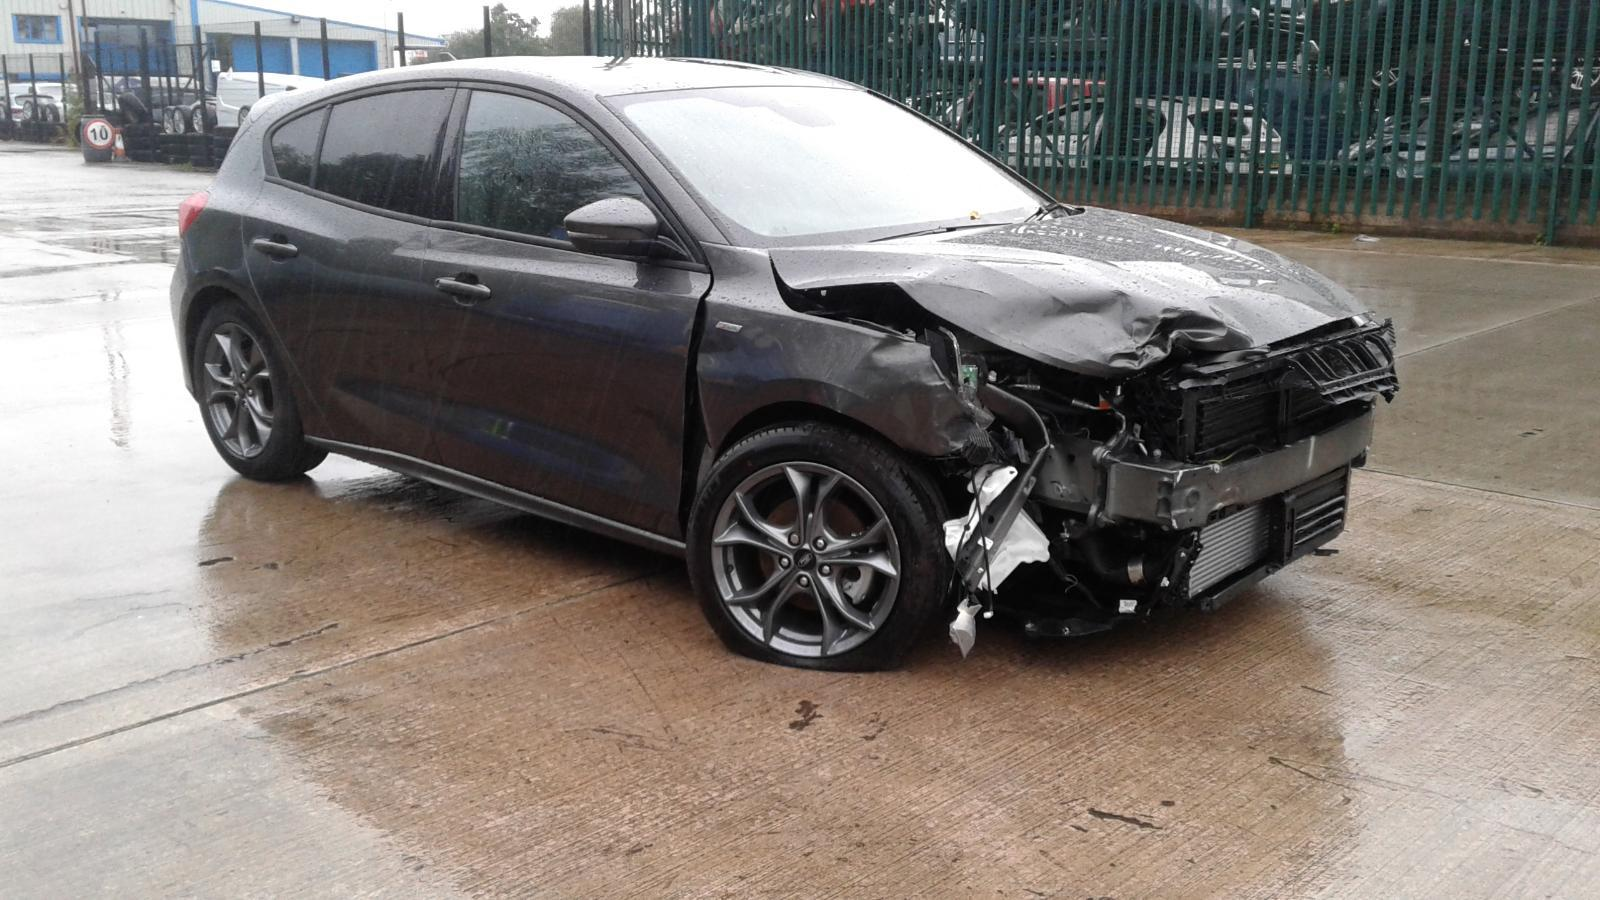 2020 FORD FOCUS ST-LINE FOR SALE £9500 ONO Image